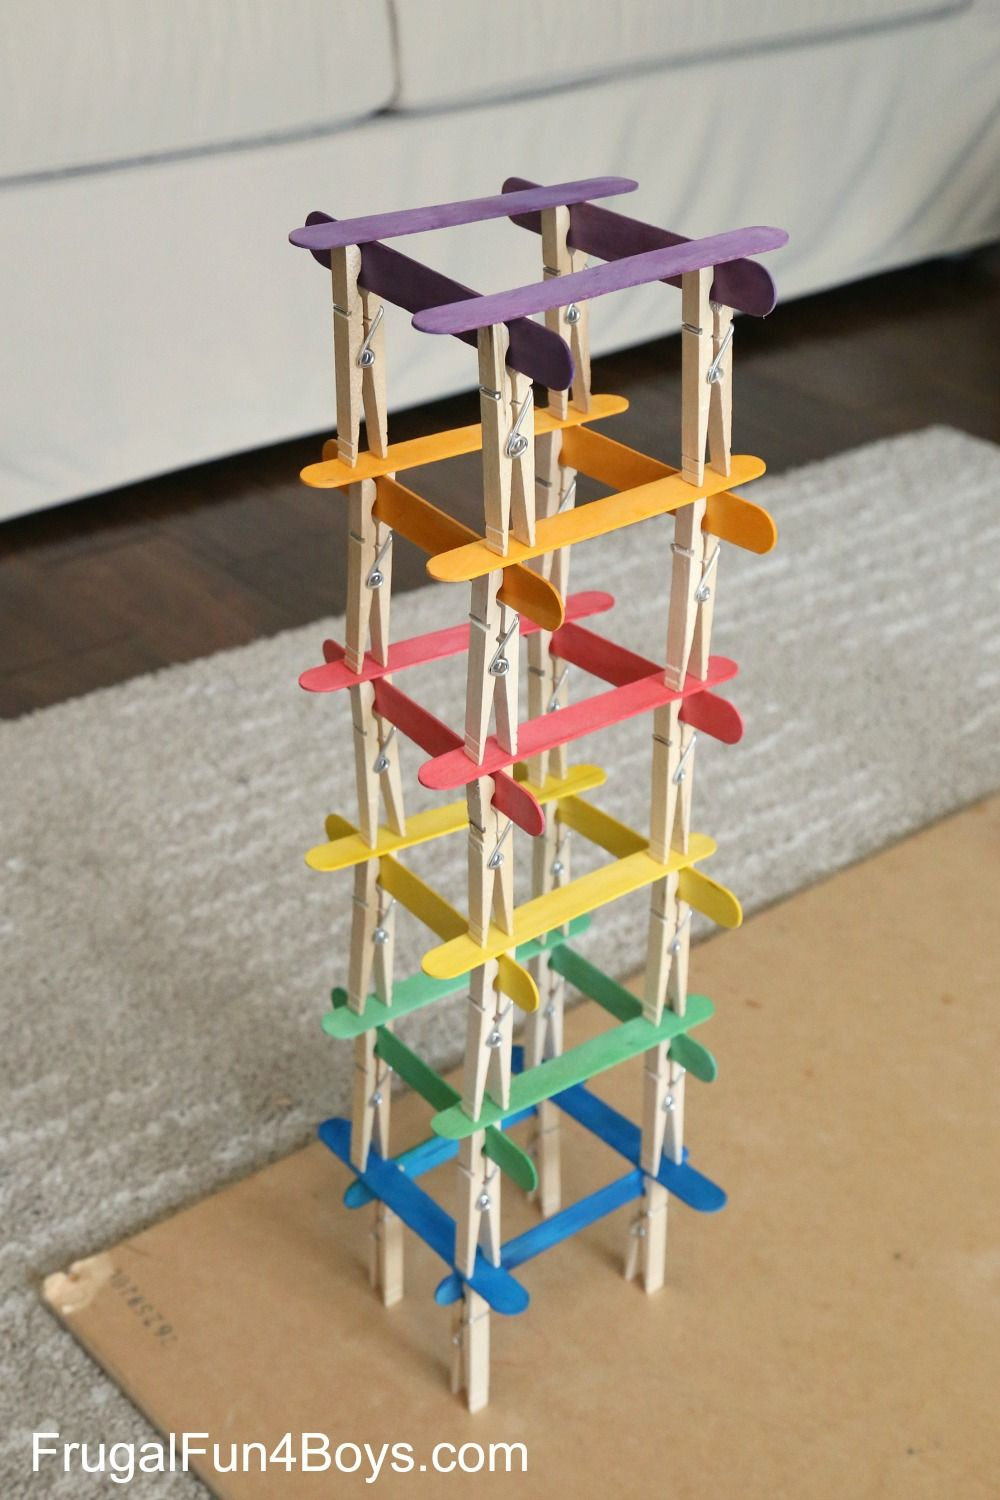 5 Engineering Challenges With Clothespins Binder Clips And Craft Sticks Engineering Challenge Craft Stick Crafts Indoor Activities For Kids